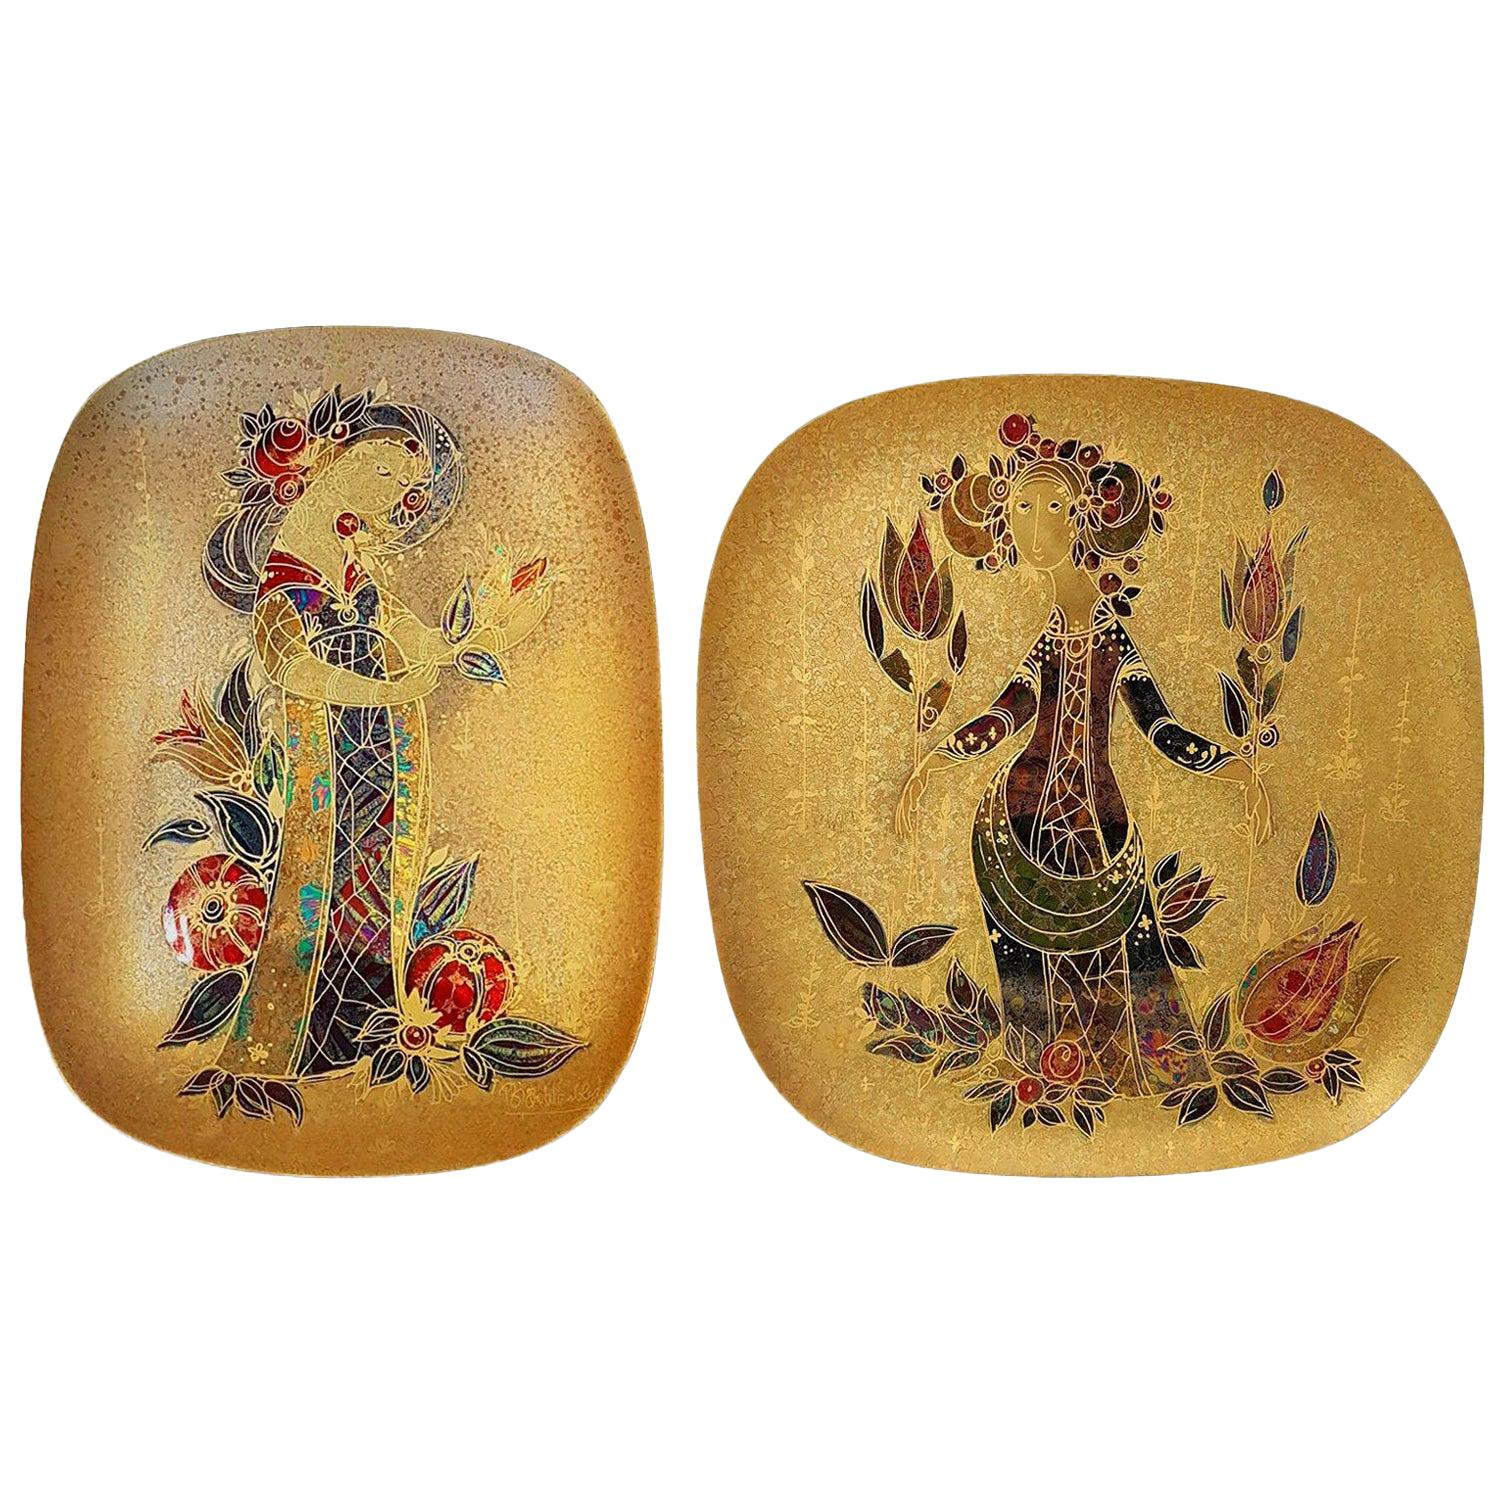 Pair of Rare Hand Painted Gilded Platter by Bjørn Wiinblad, 1960s